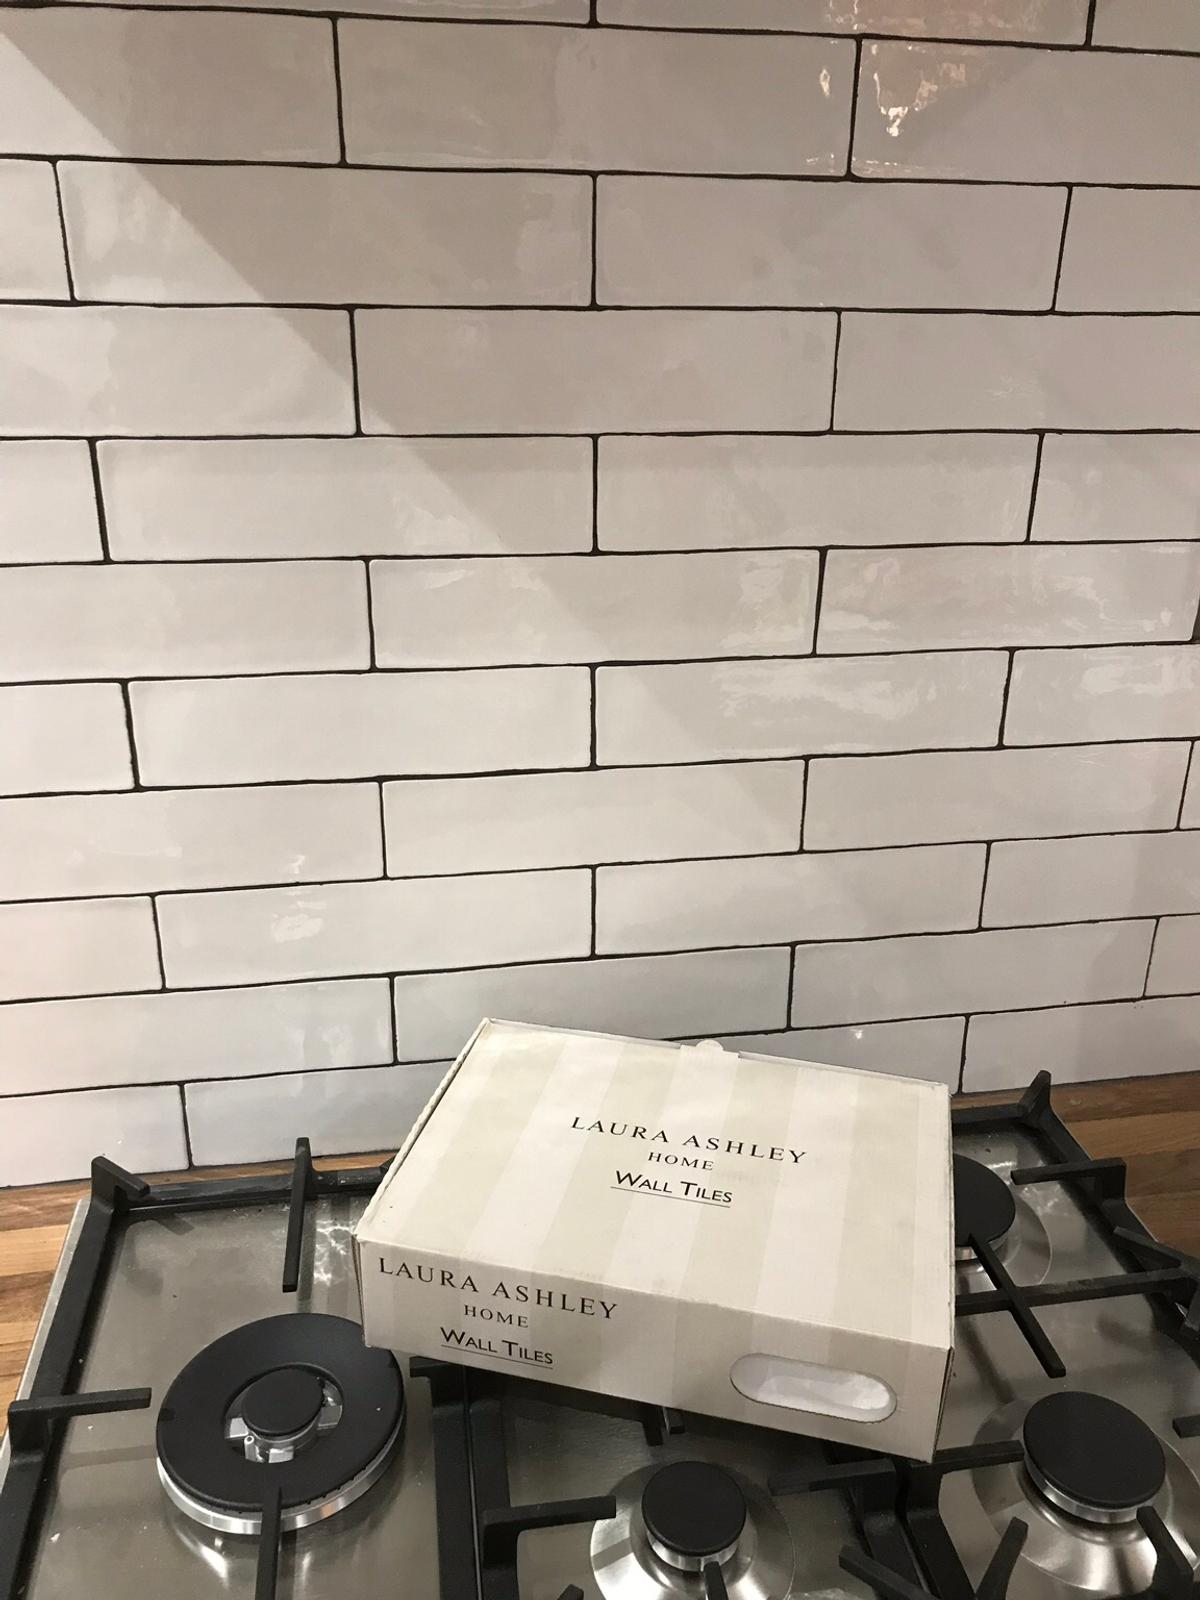 Laura Ashley Ceramic Tiles 75mm X 300mm In Nn3 Northampton For 20 00 For Sale Shpock